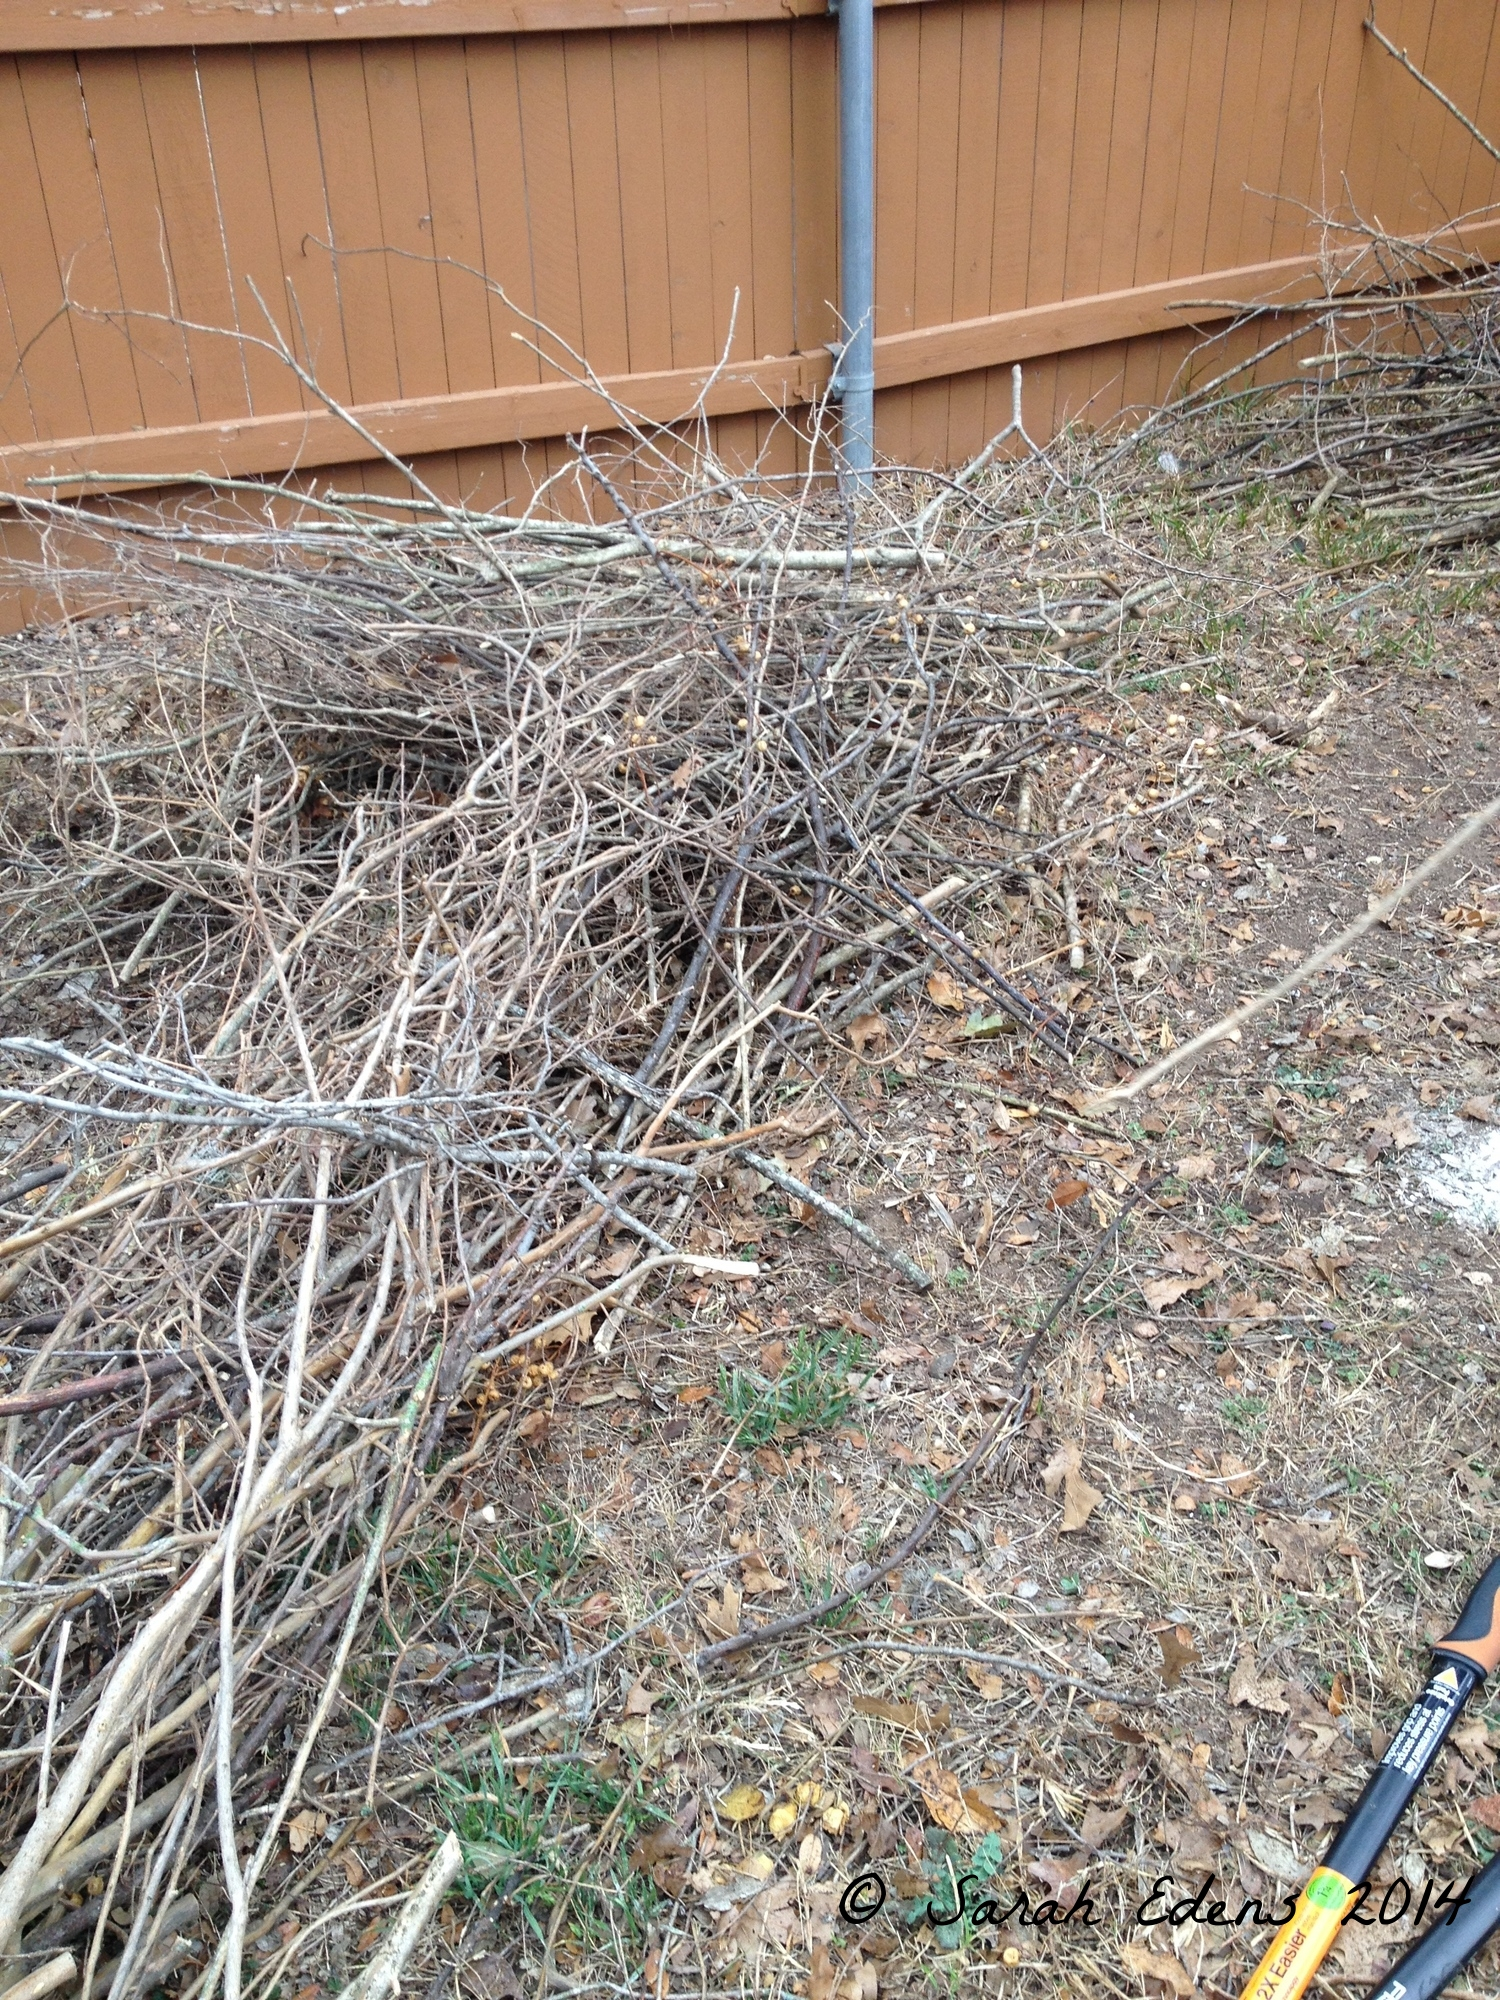 More sticks collected for the bed!